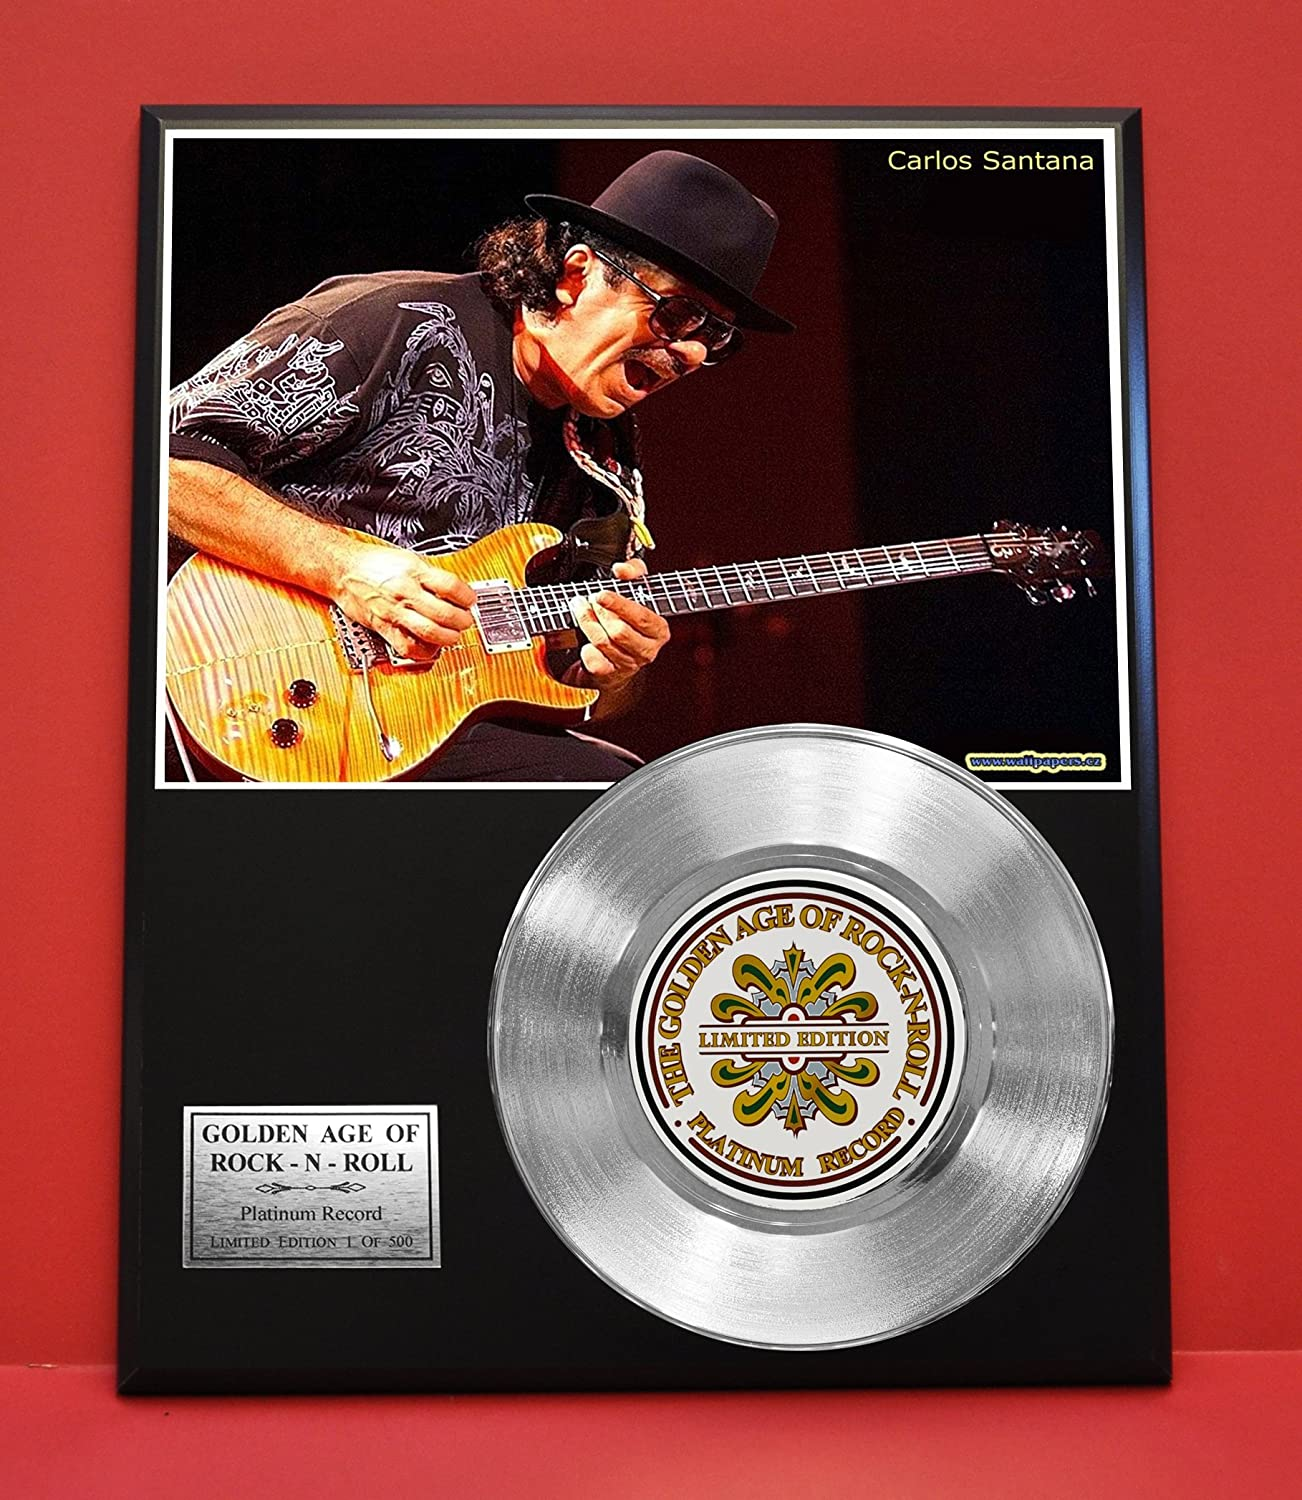 Santana Limited Edition Non Riaa Platinum Record Display - Award Quality Music Memorabilia Wall Art limited edition сахарница s5